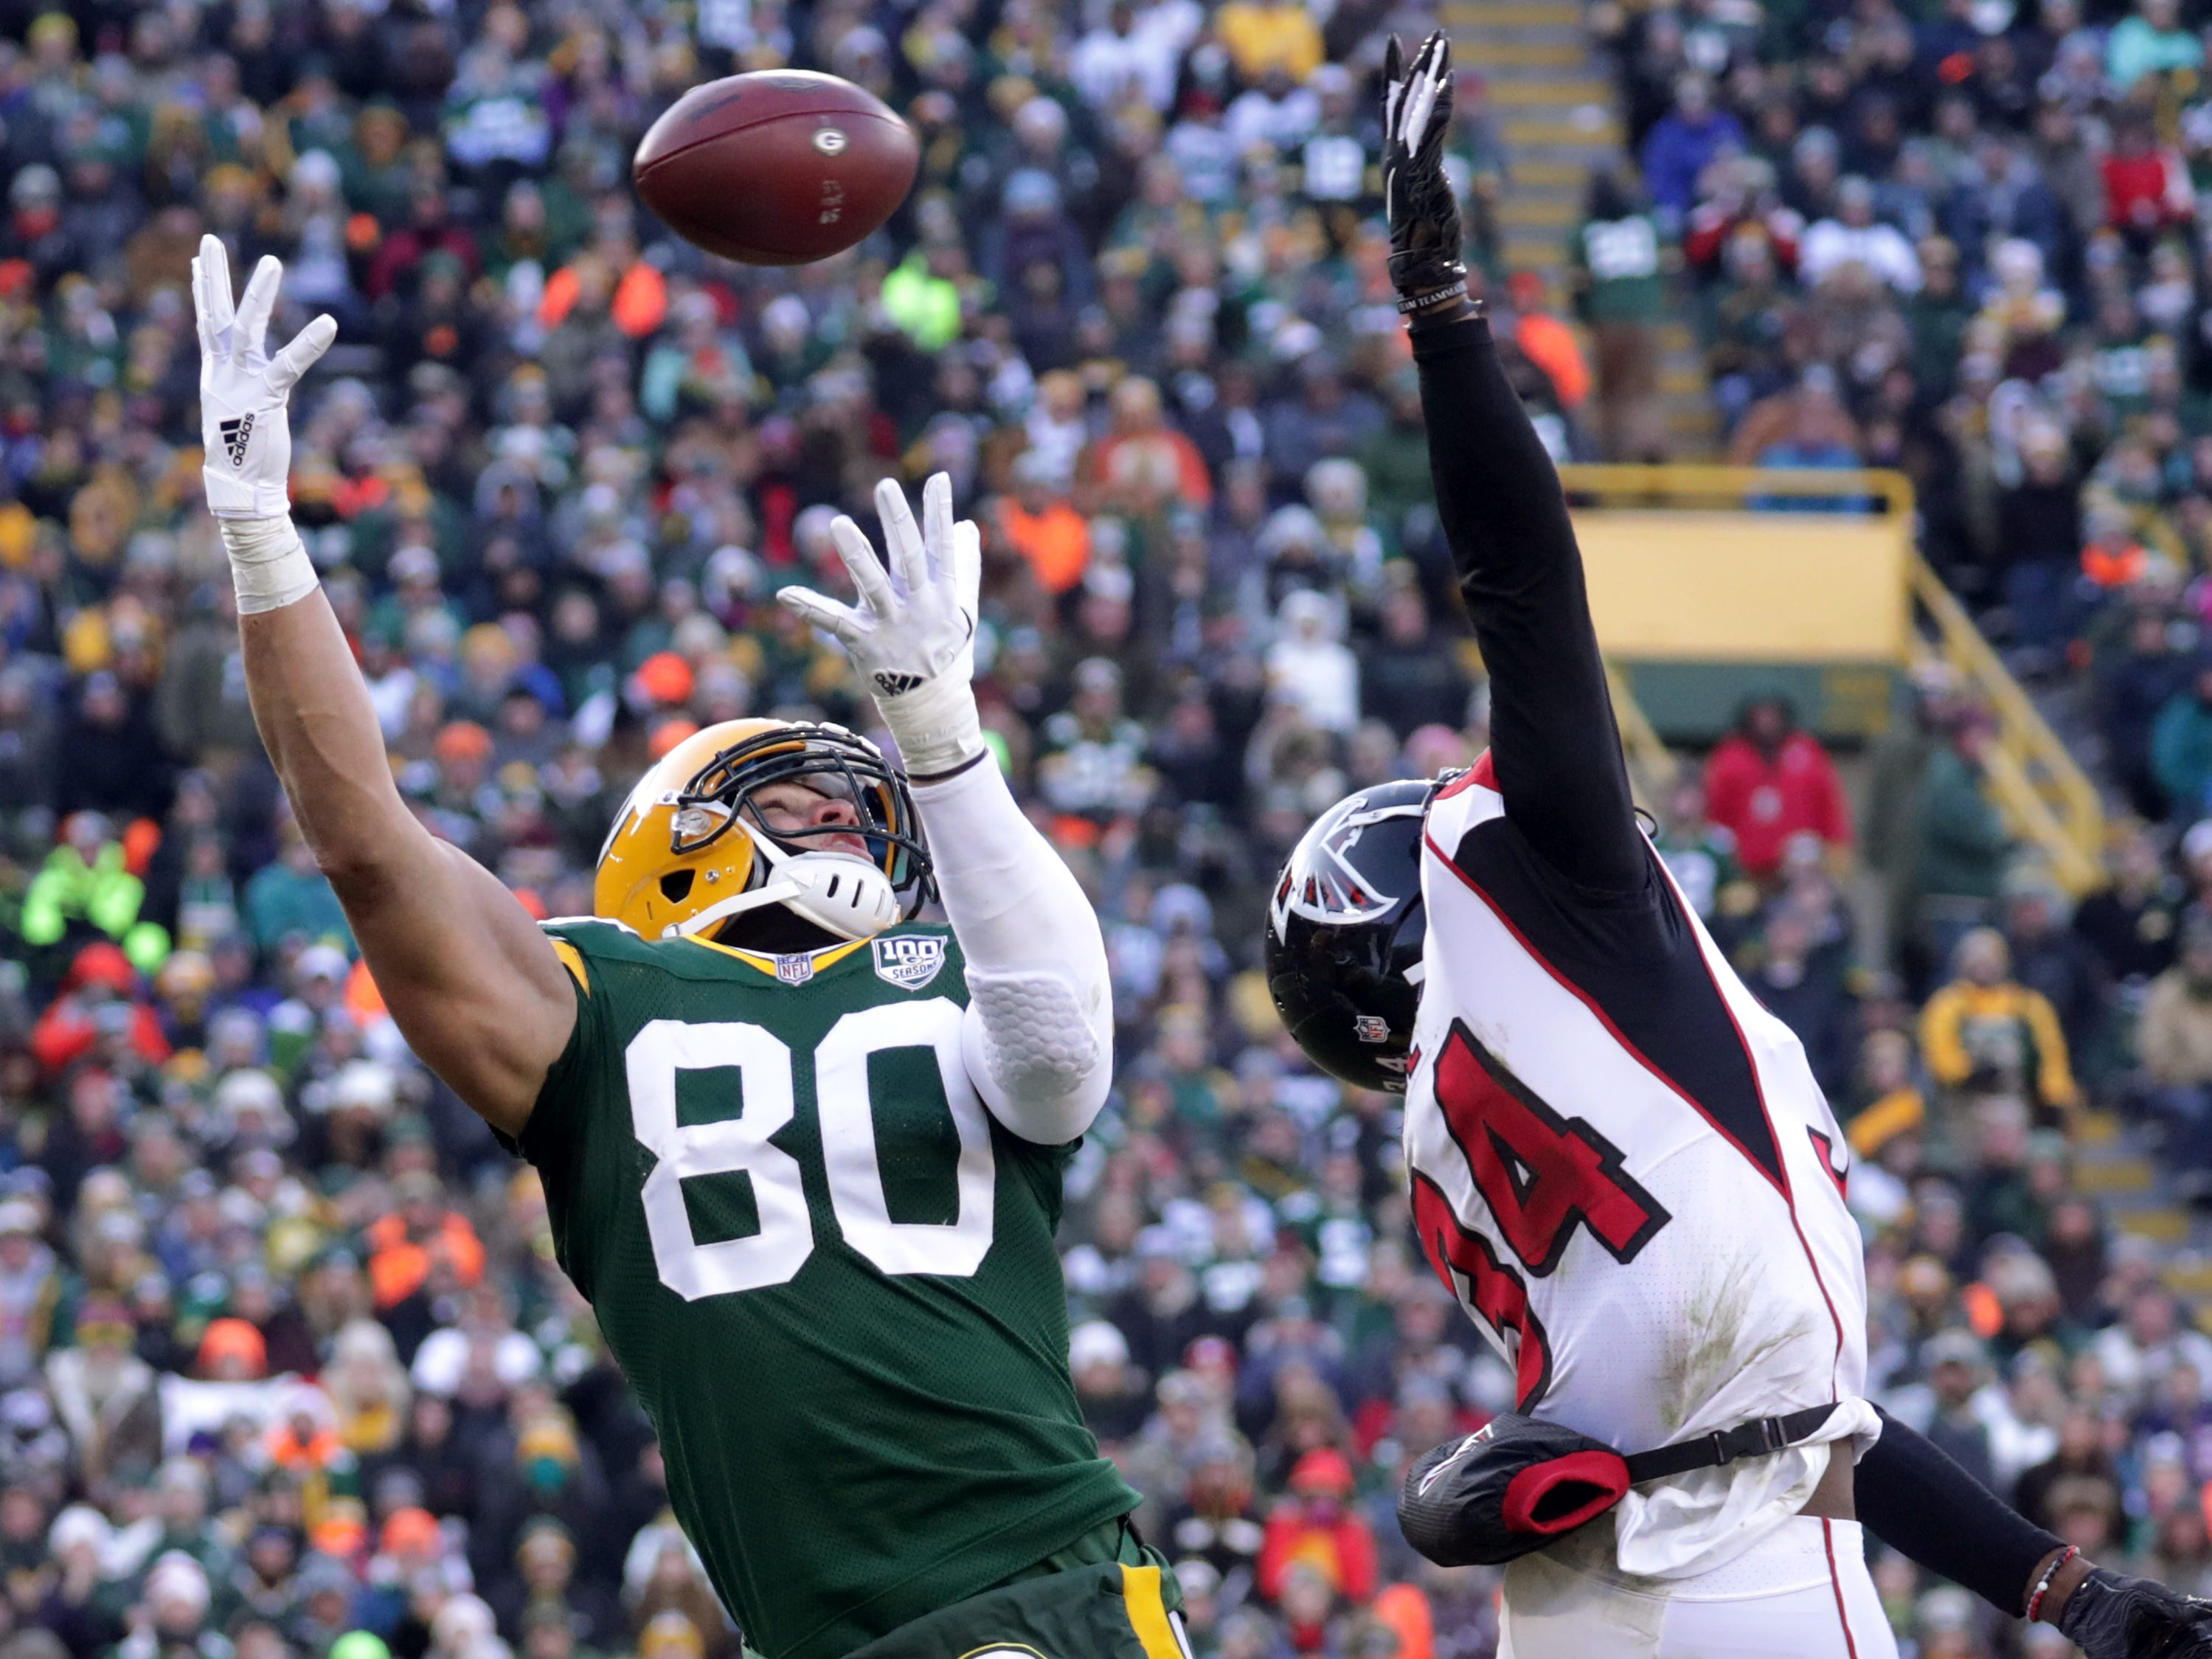 Green Bay Packers tight end Jimmy Graham goes up for a pass against Atlanta Falcons cornerback Brian Poole during their football game on Sunday, December 9, 2018, at Lambeau Field in Green Bay, Wis. Wm. Glasheen/USA TODAY NETWORK-Wisconsin.